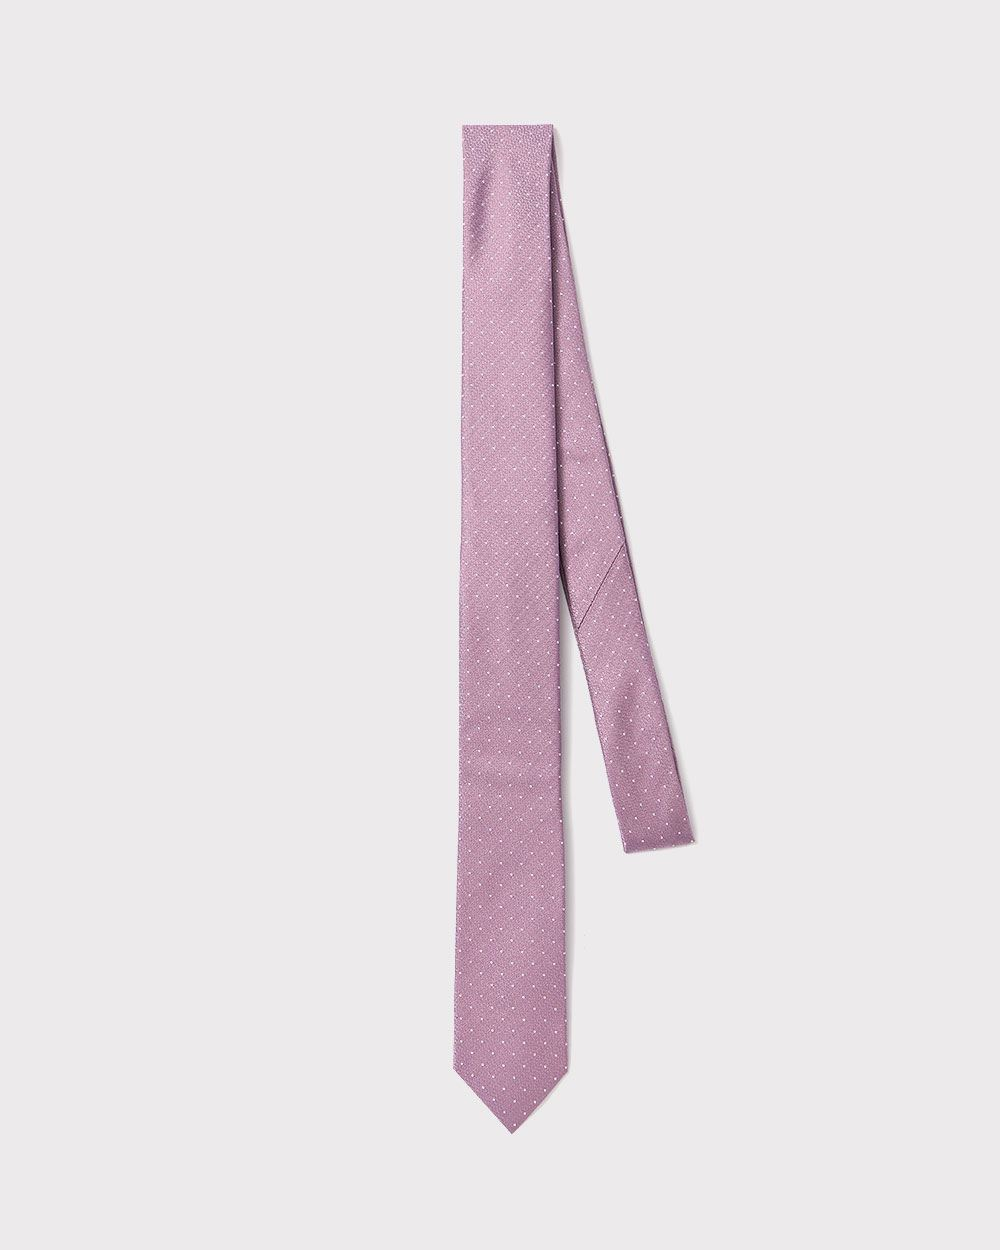 Skinny dotted pink tie